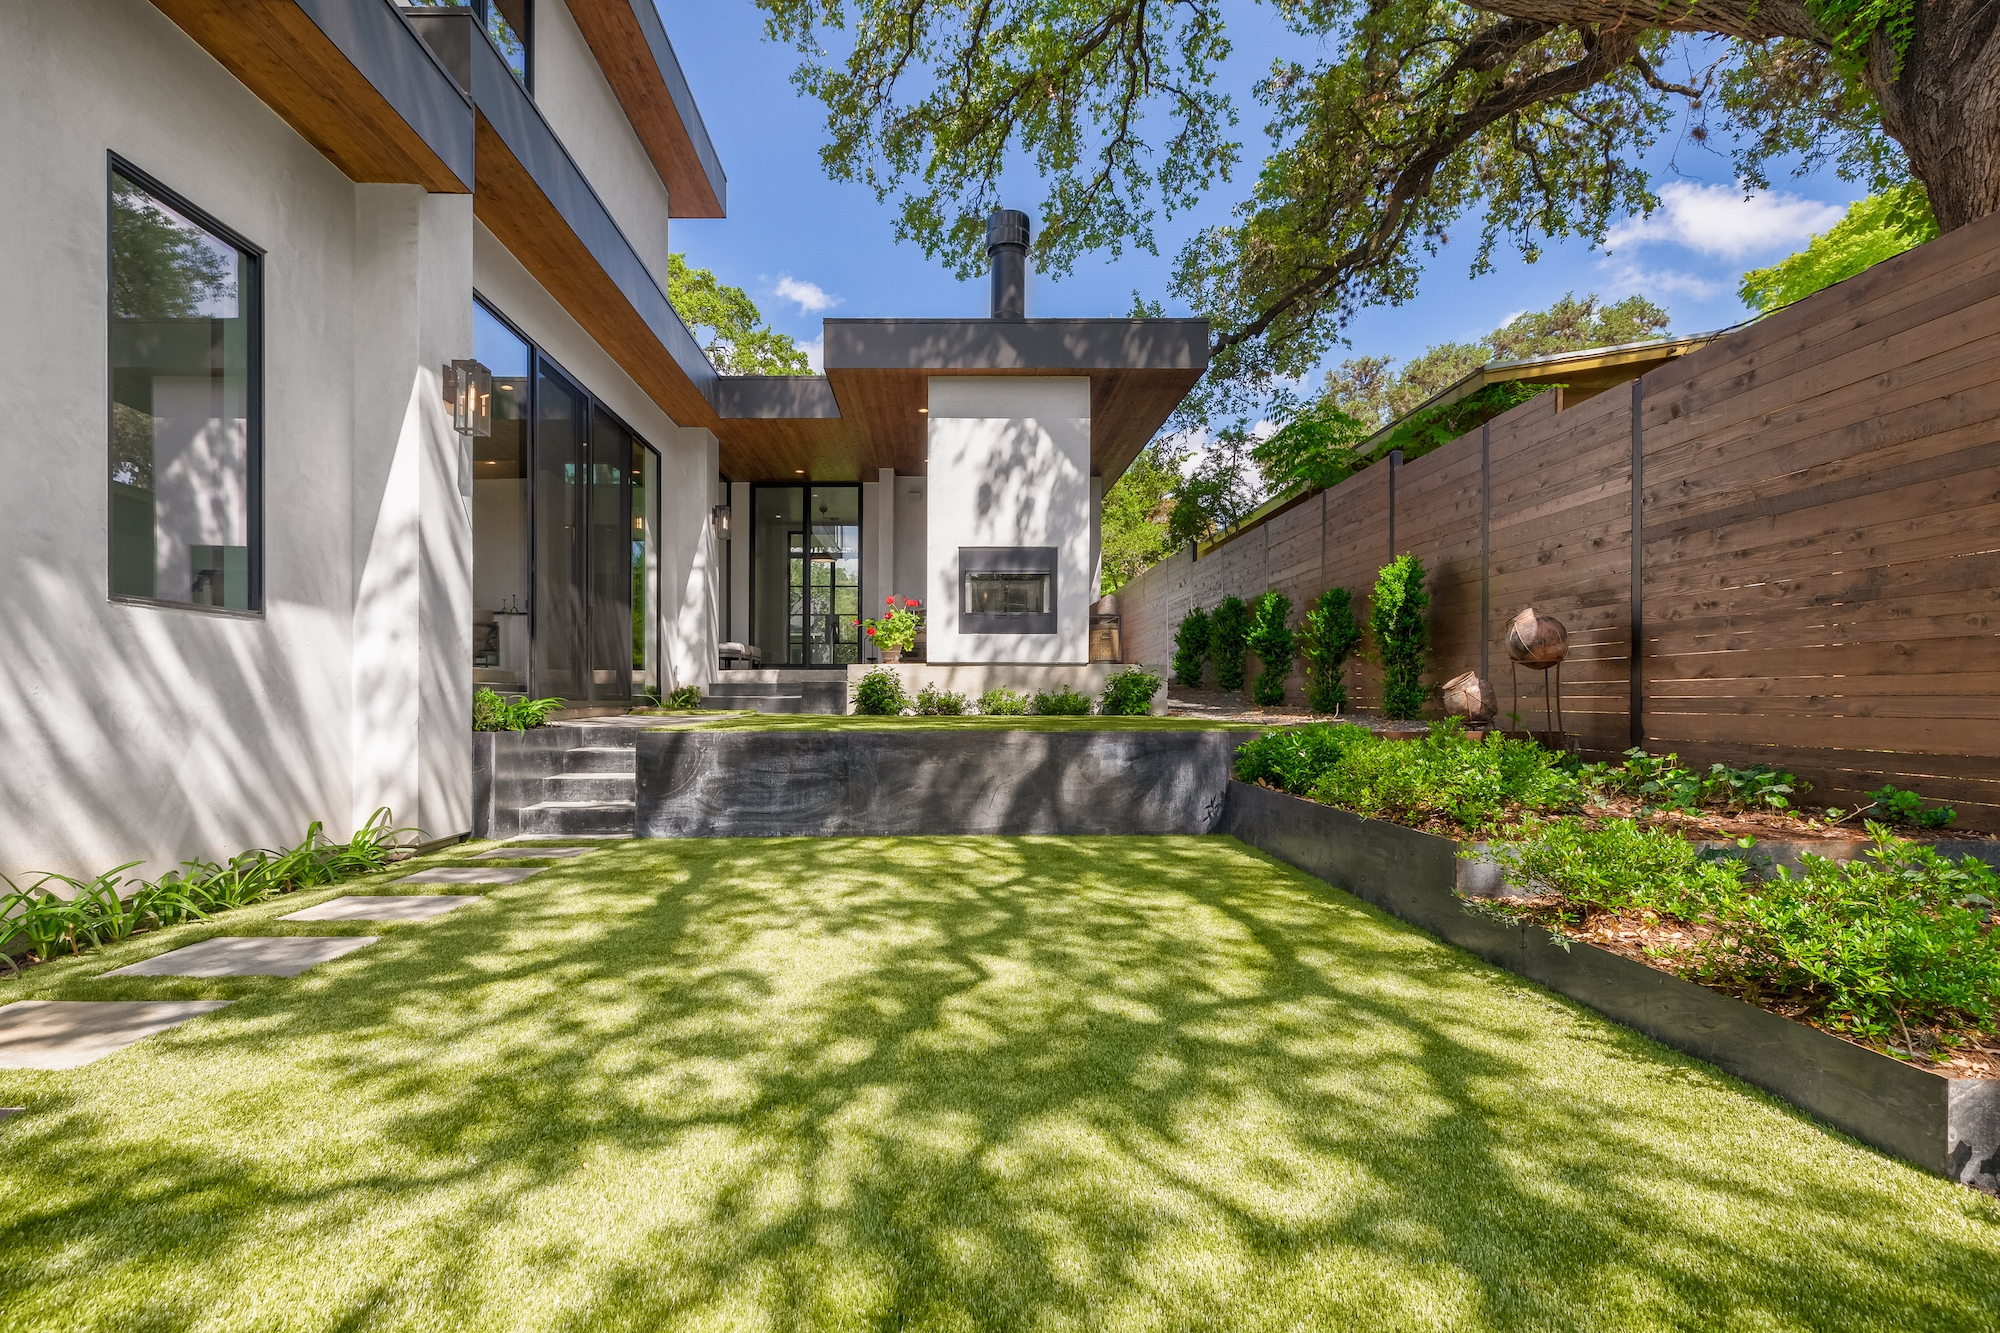 Best of Texas Landscapes backyard renovation in Travis Heights